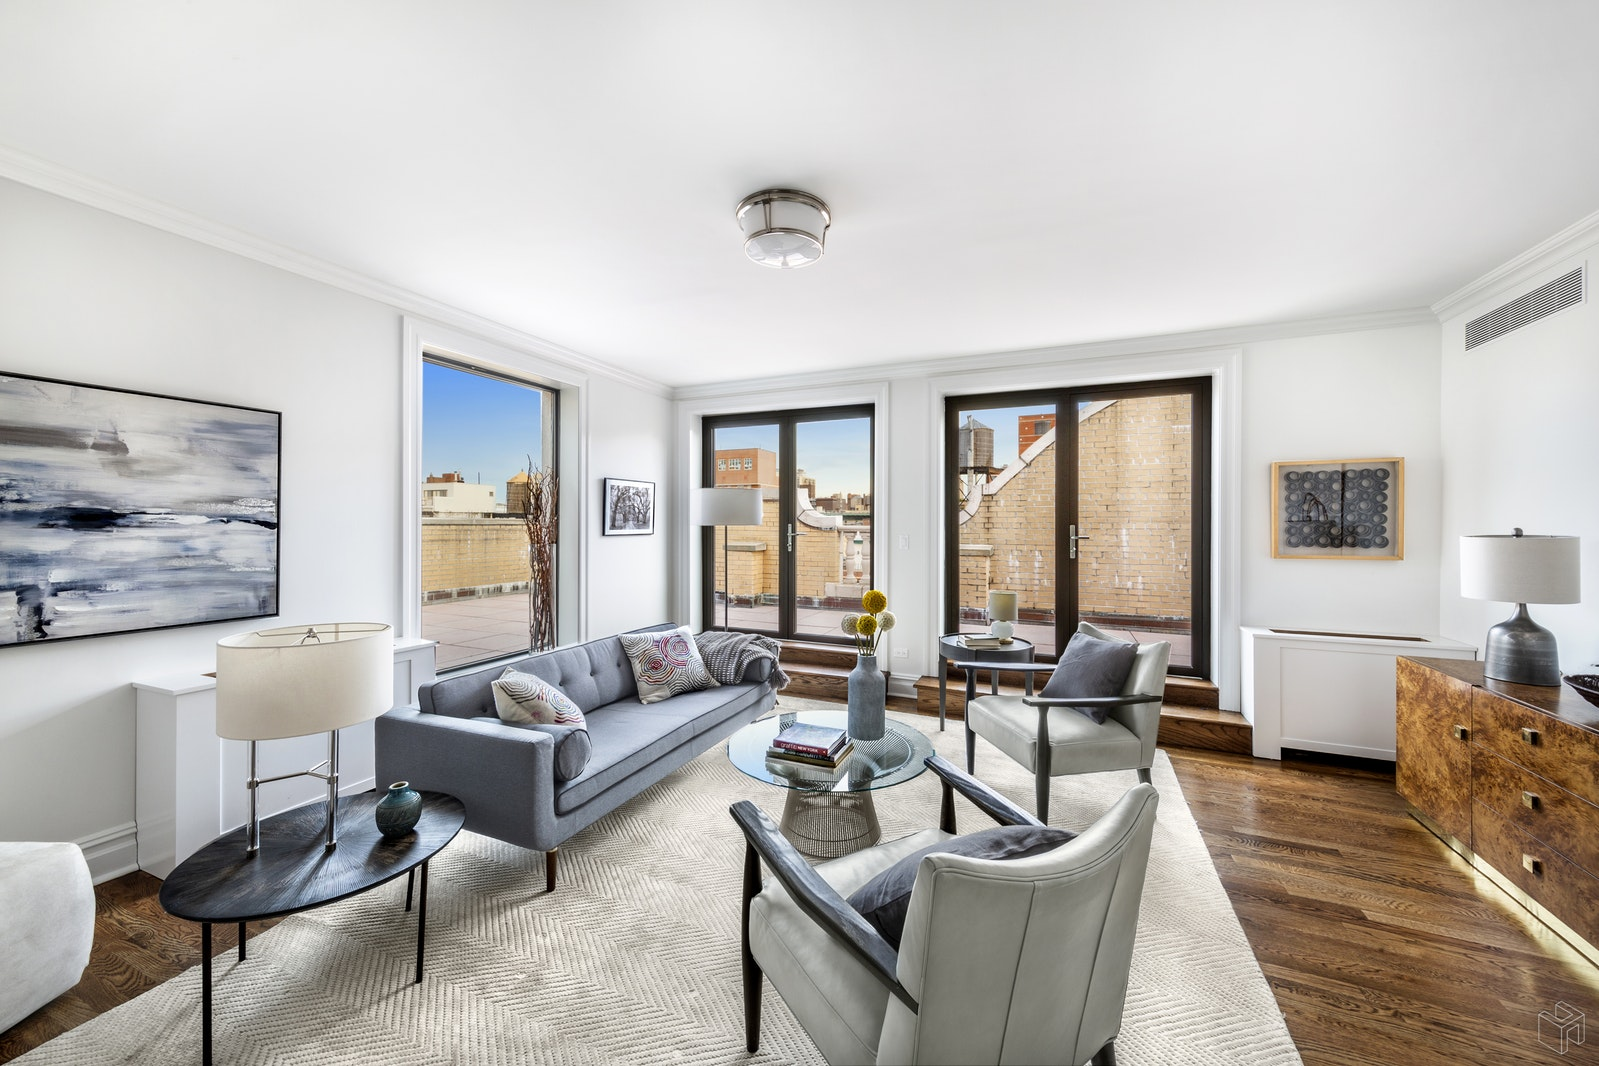 595 WEST END AVENUE PH, Upper West Side, $1,925,000, Web #: 19209853